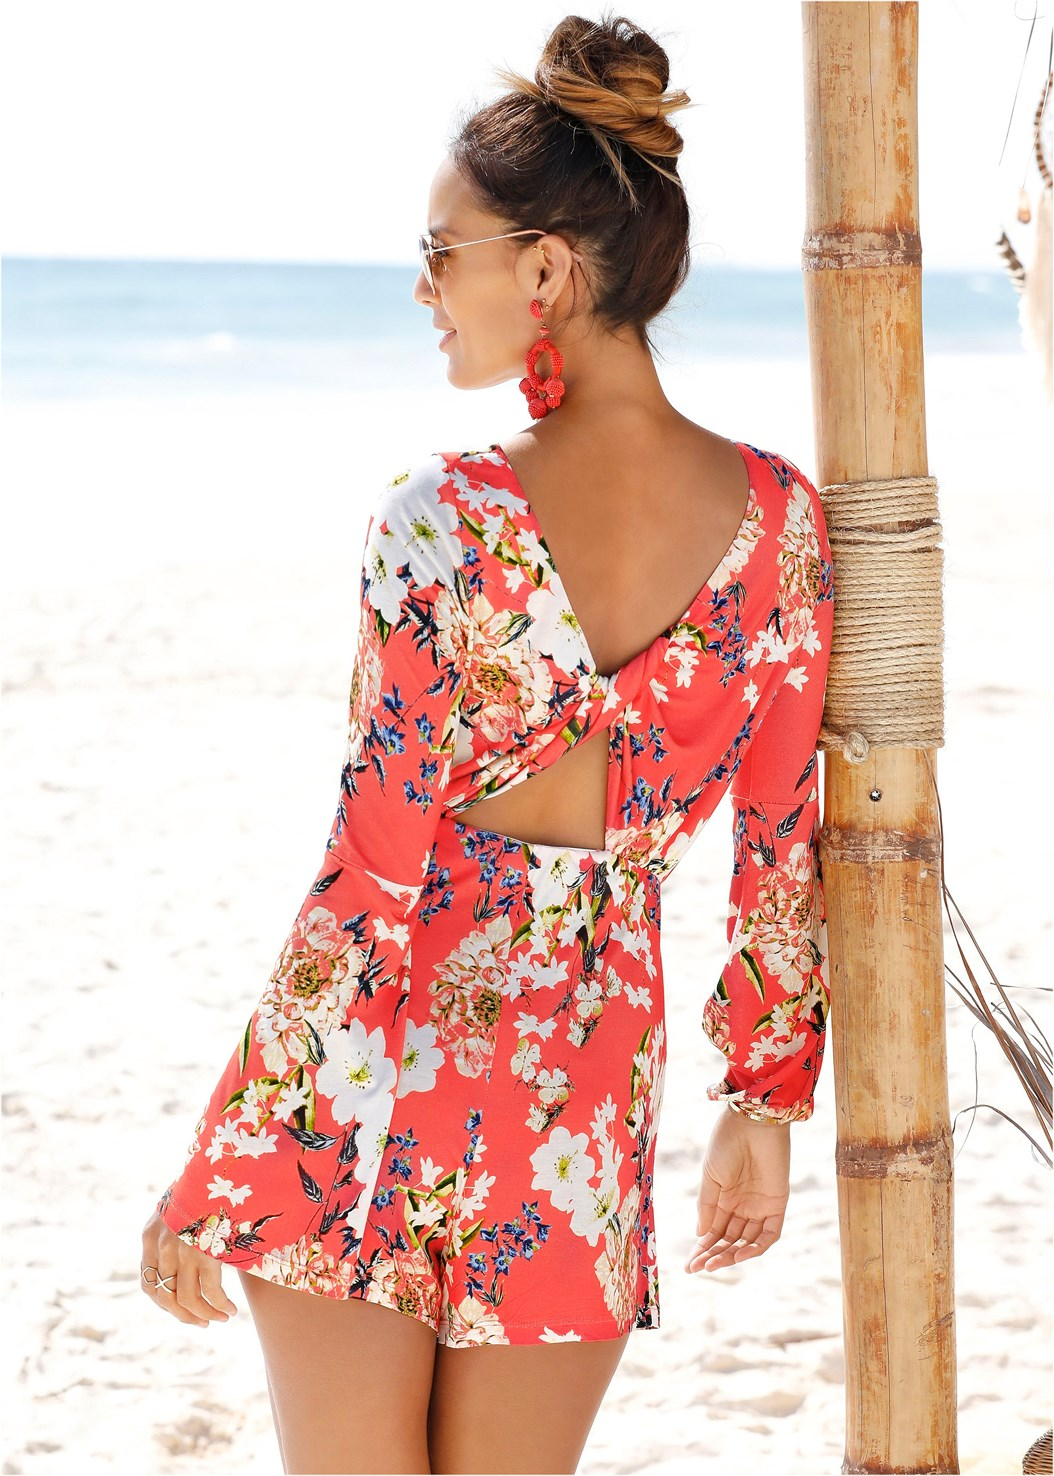 Twist Back Floral Romper,Nubra Ultralite,Embellished Wedge,Wrap Around Heels,Beaded Tassel Earrings